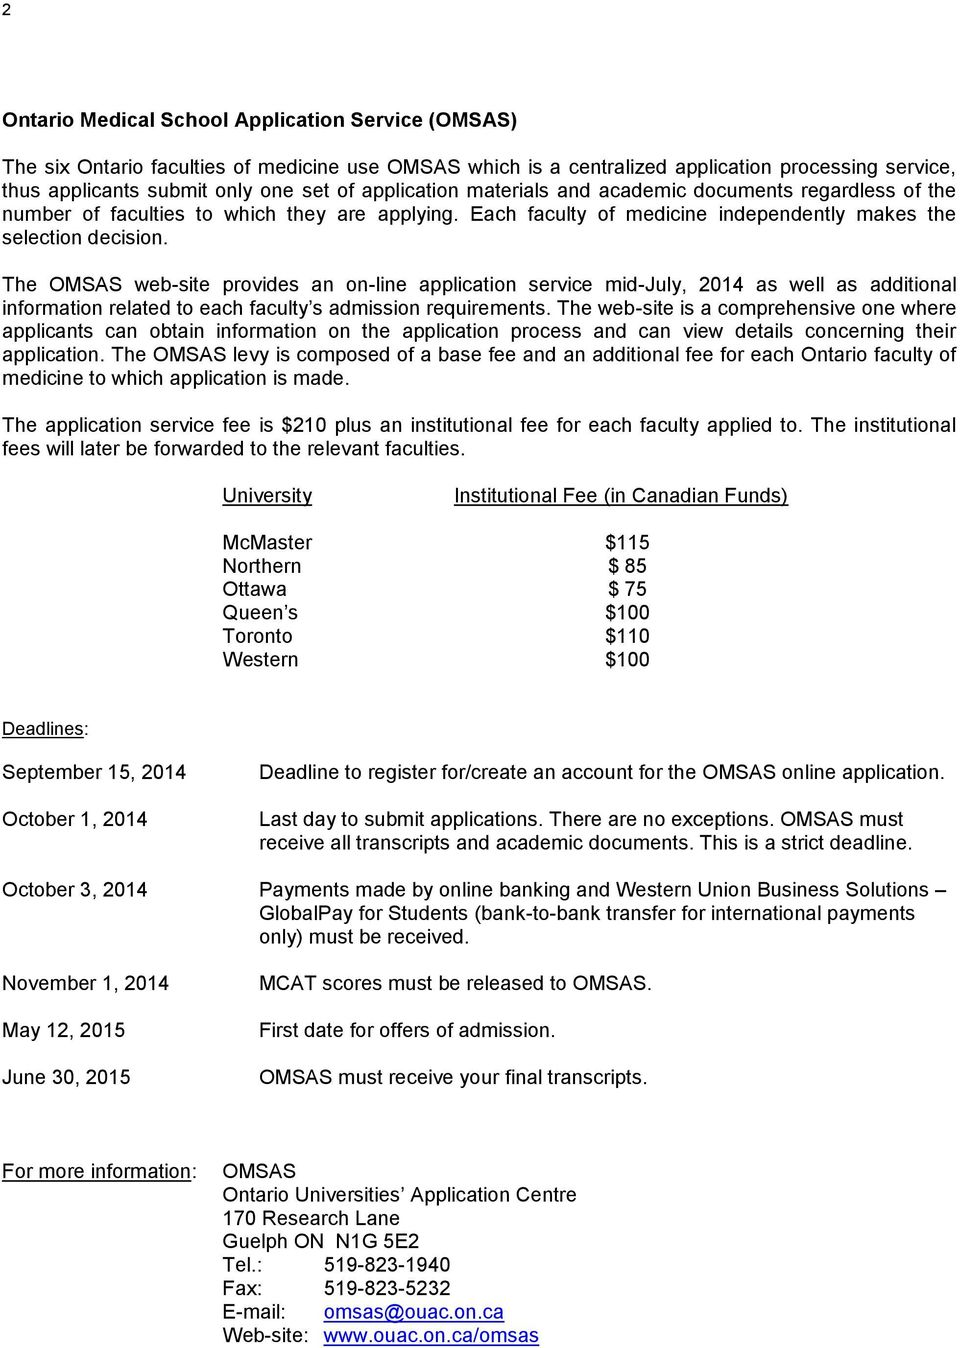 The OMSAS web-site provides an on-line application service mid-july, 2014 as well as additional information related to each faculty s admission requirements.